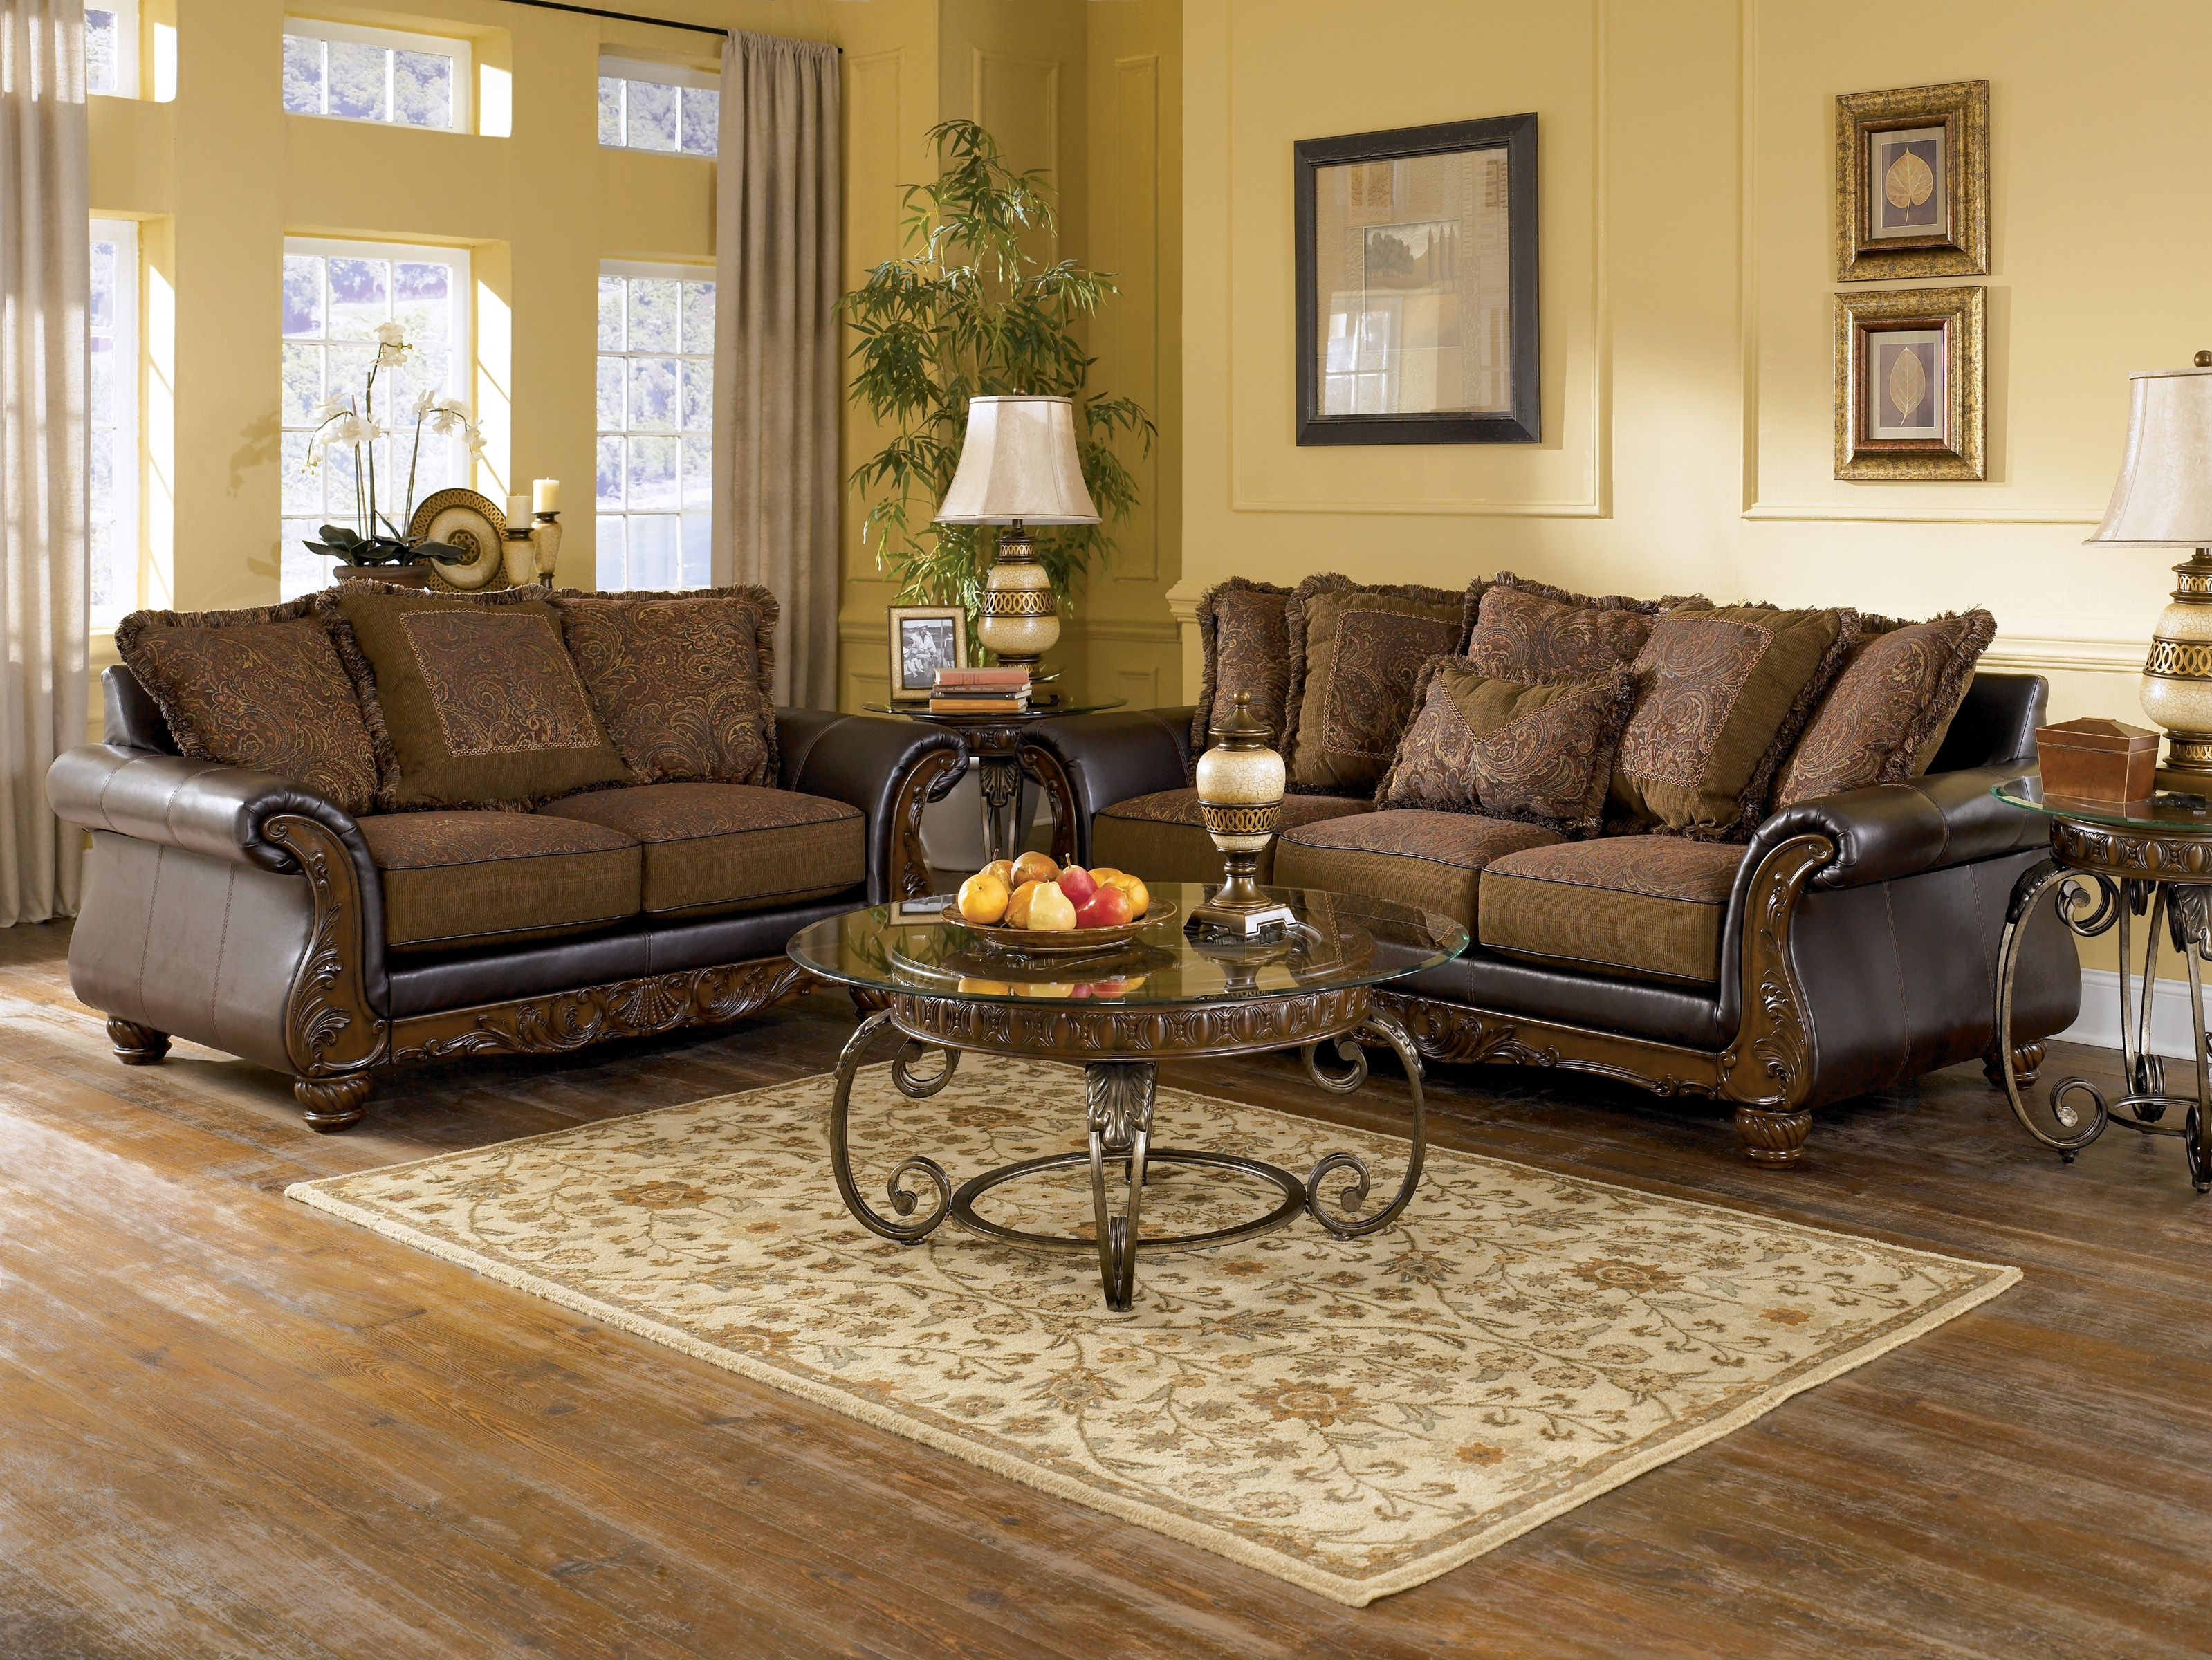 Sofas Wilmington Nc - Sofa Designs with regard to Wilmington Nc Sectional Sofas (Image 9 of 10)